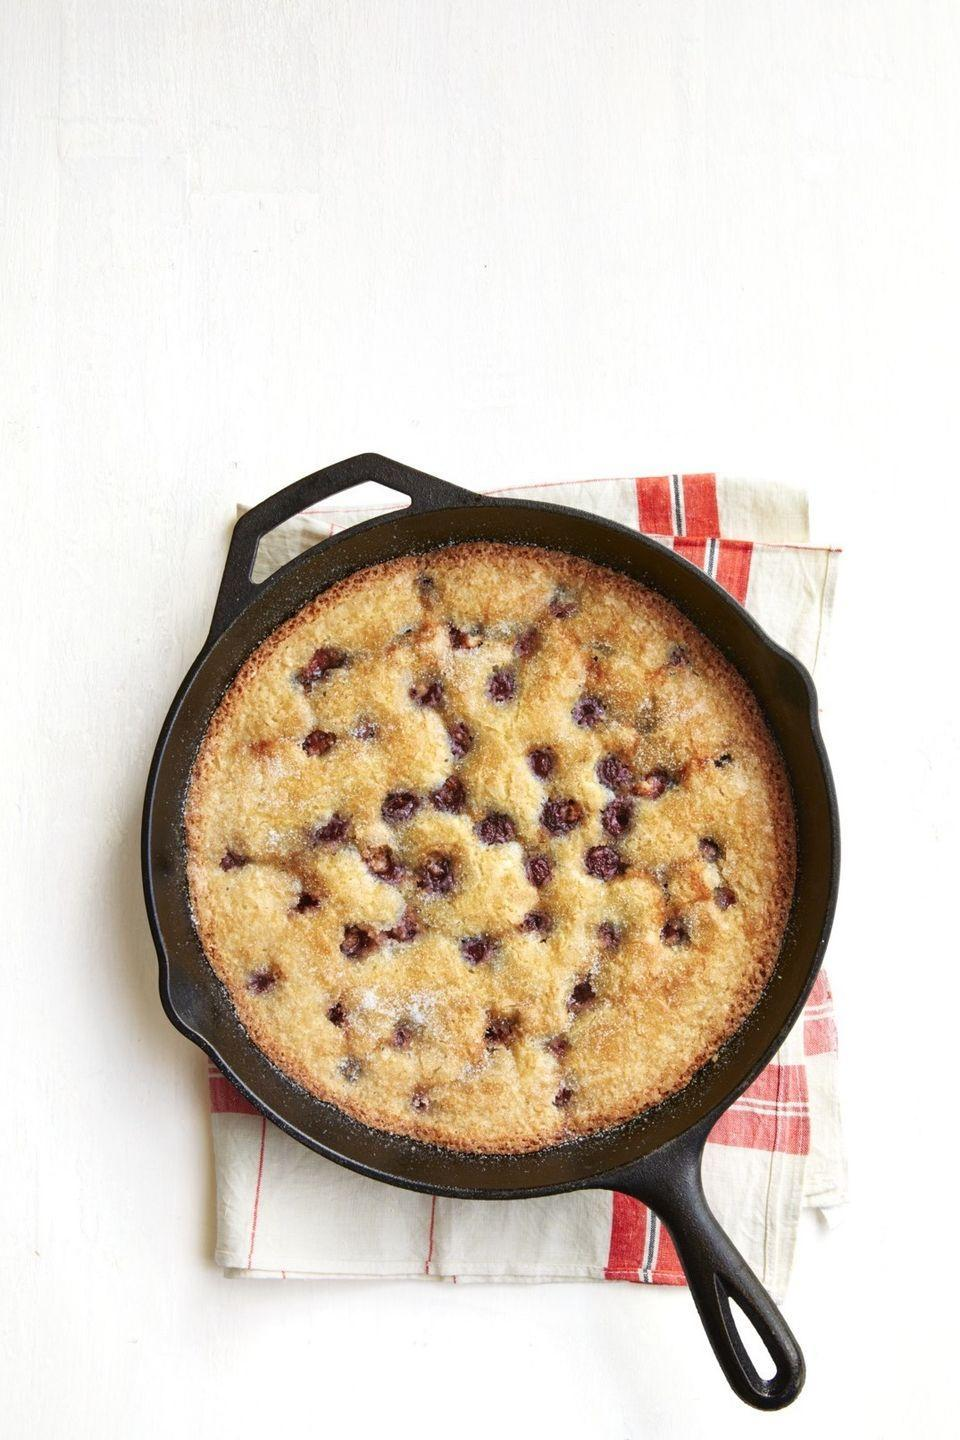 """<p>You won't find a dessert much easier than this cherry cobbler, and it looks great served right from the skillet.</p><p><strong><a href=""""https://thepioneerwoman.com/food-cooking/recipes/a32098568/cherry-cobbler-recipe/"""" rel=""""nofollow noopener"""" target=""""_blank"""" data-ylk=""""slk:Get the recipe."""" class=""""link rapid-noclick-resp"""">Get the recipe.</a></strong></p><p><a class=""""link rapid-noclick-resp"""" href=""""https://go.redirectingat.com?id=74968X1596630&url=https%3A%2F%2Fwww.walmart.com%2Fip%2FThe-Pioneer-Woman-Timeless-Beauty-Pre-Seasoned-Plus-12-Cast-Iron-Fry-Pan%2F106289810&sref=https%3A%2F%2Fwww.thepioneerwoman.com%2Ffood-cooking%2Fmeals-menus%2Fg32109085%2Ffourth-of-july-desserts%2F"""" rel=""""nofollow noopener"""" target=""""_blank"""" data-ylk=""""slk:SHOP CAST-IRON SKILLETS"""">SHOP CAST-IRON SKILLETS</a></p>"""